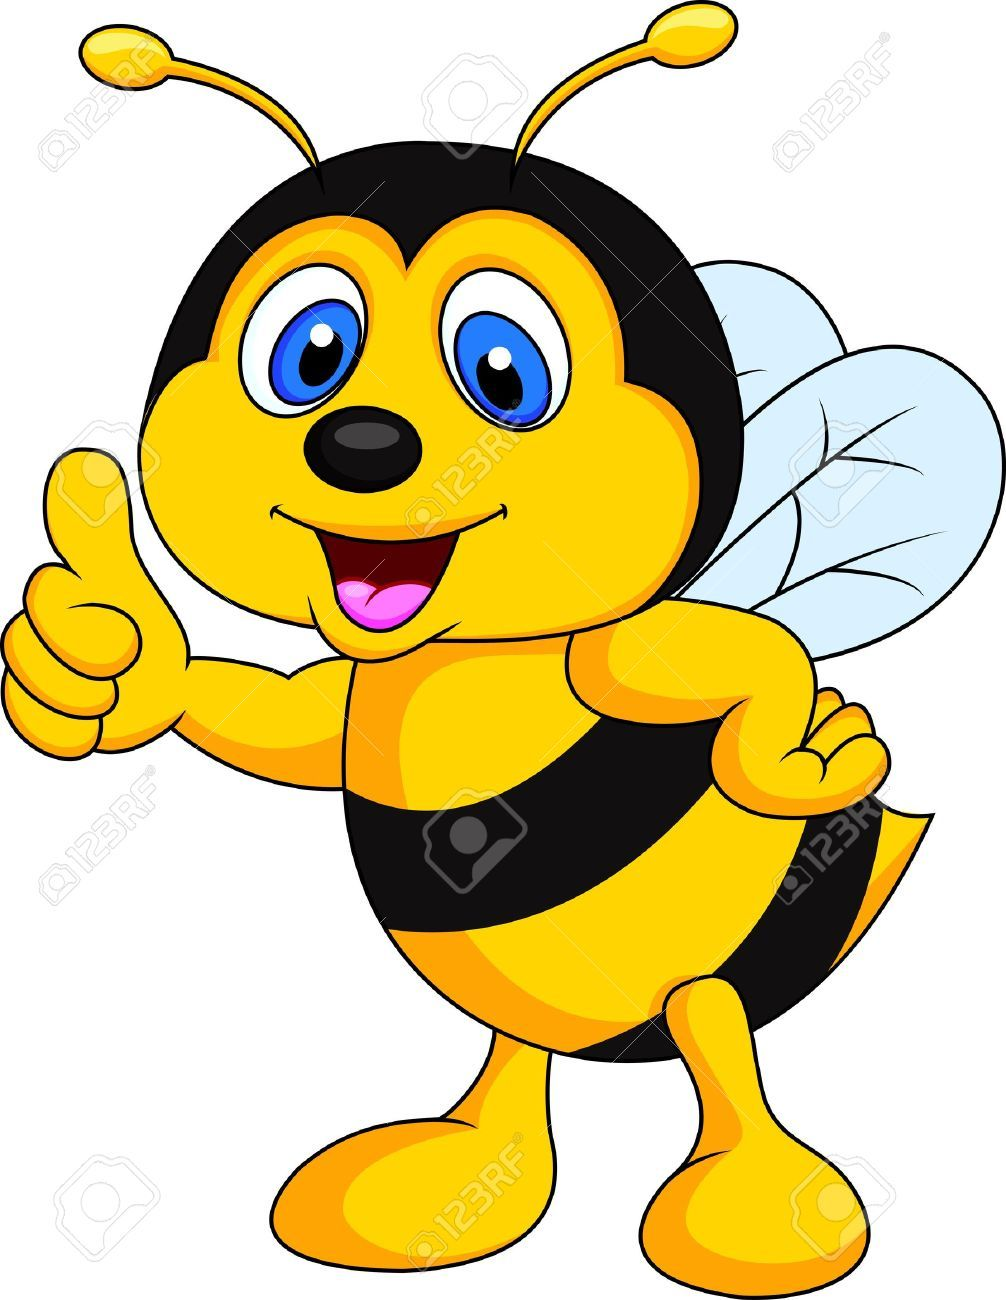 1006x1300 Bee Cartoon Thumb Up Stock Photo, Picture And Royalty Free Image